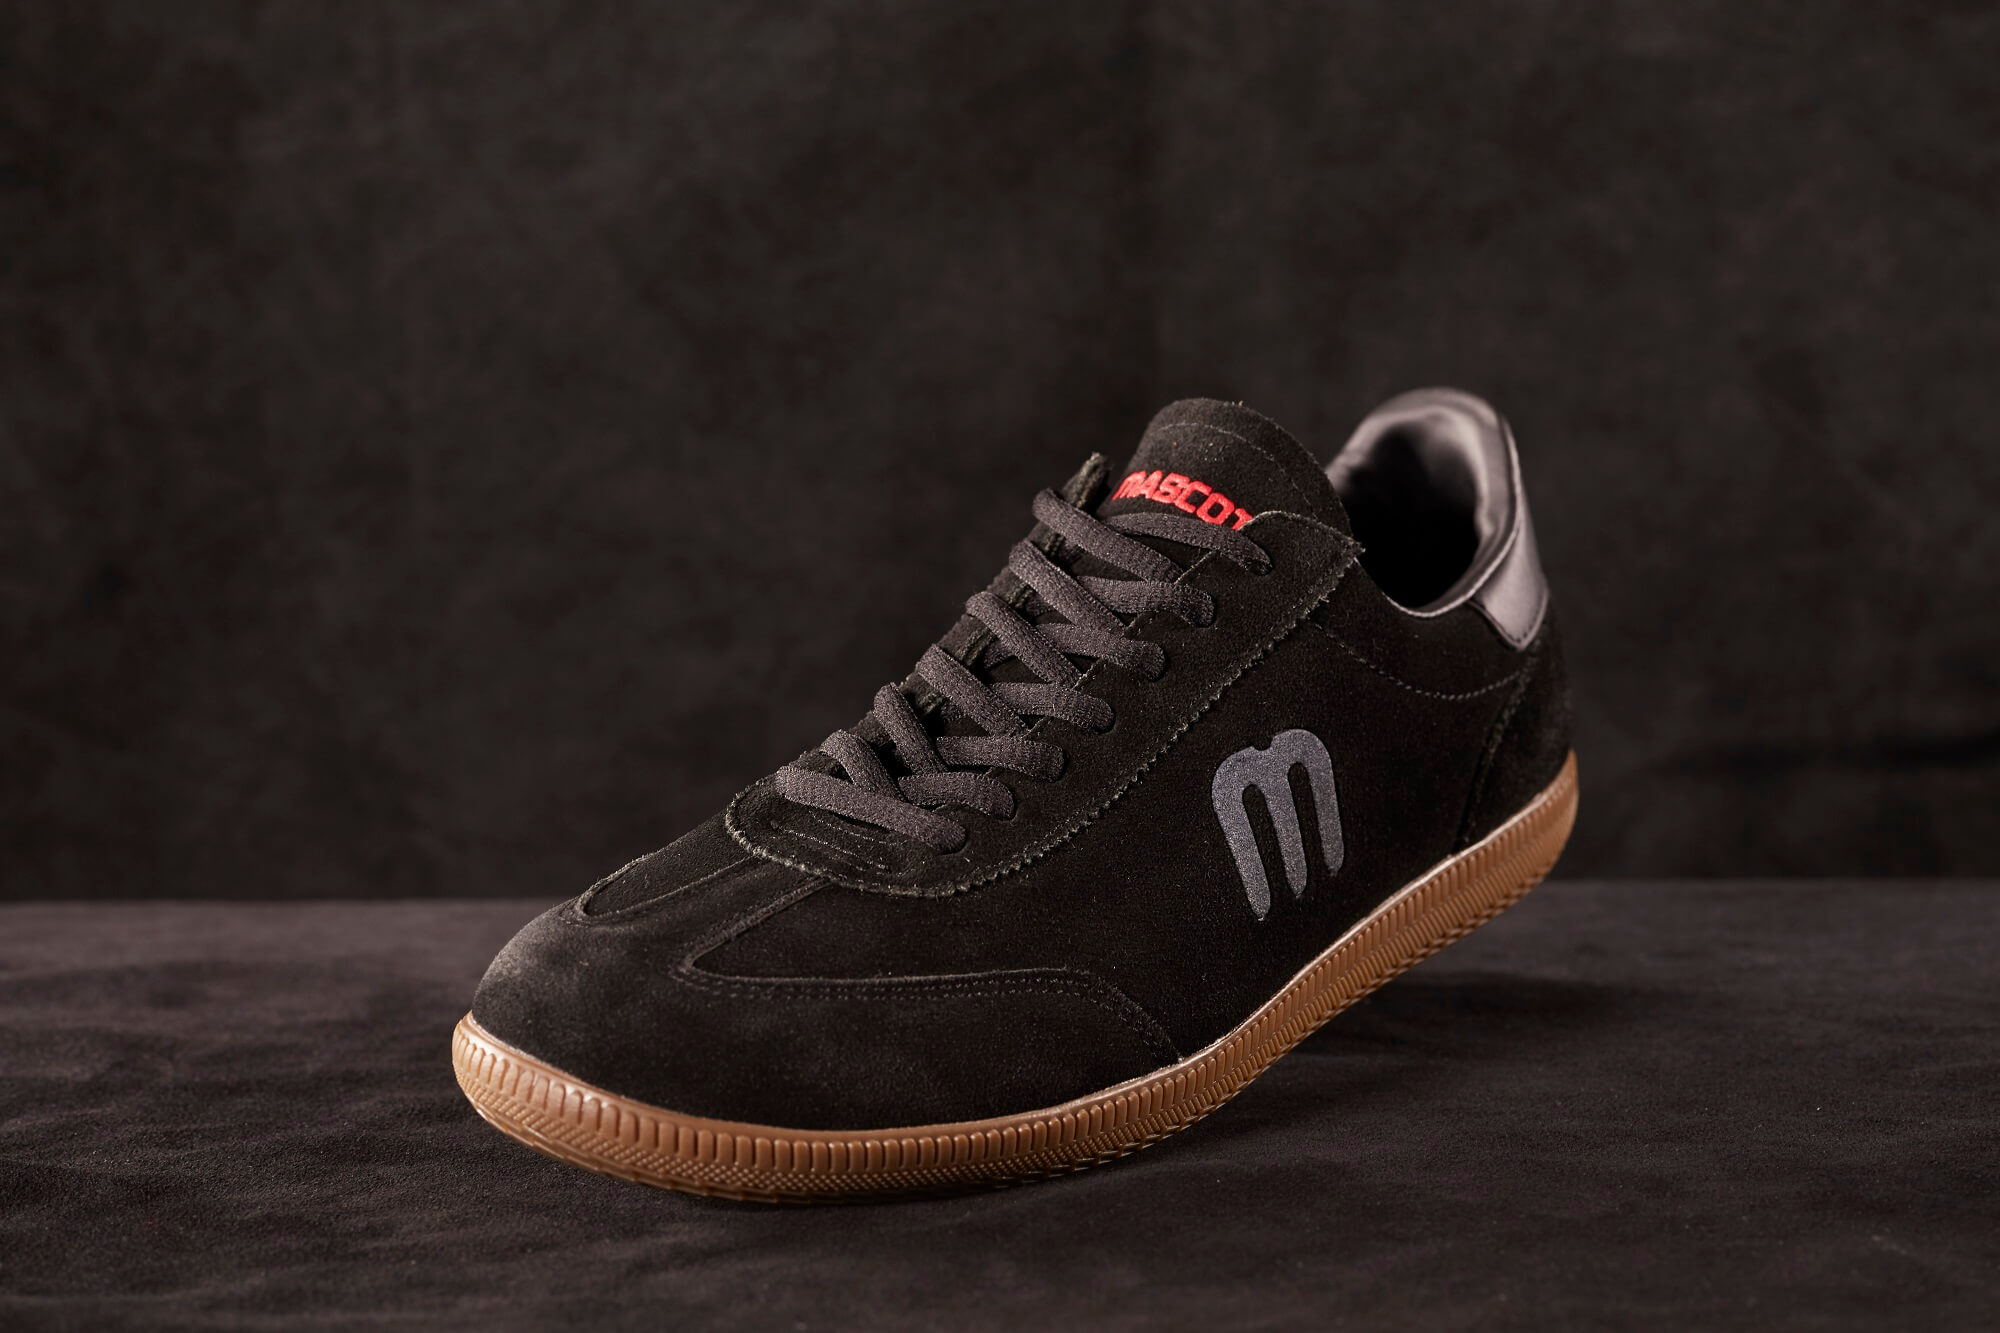 Zapatillas Negro - MASCOT® FOOTWEAR CASUAL